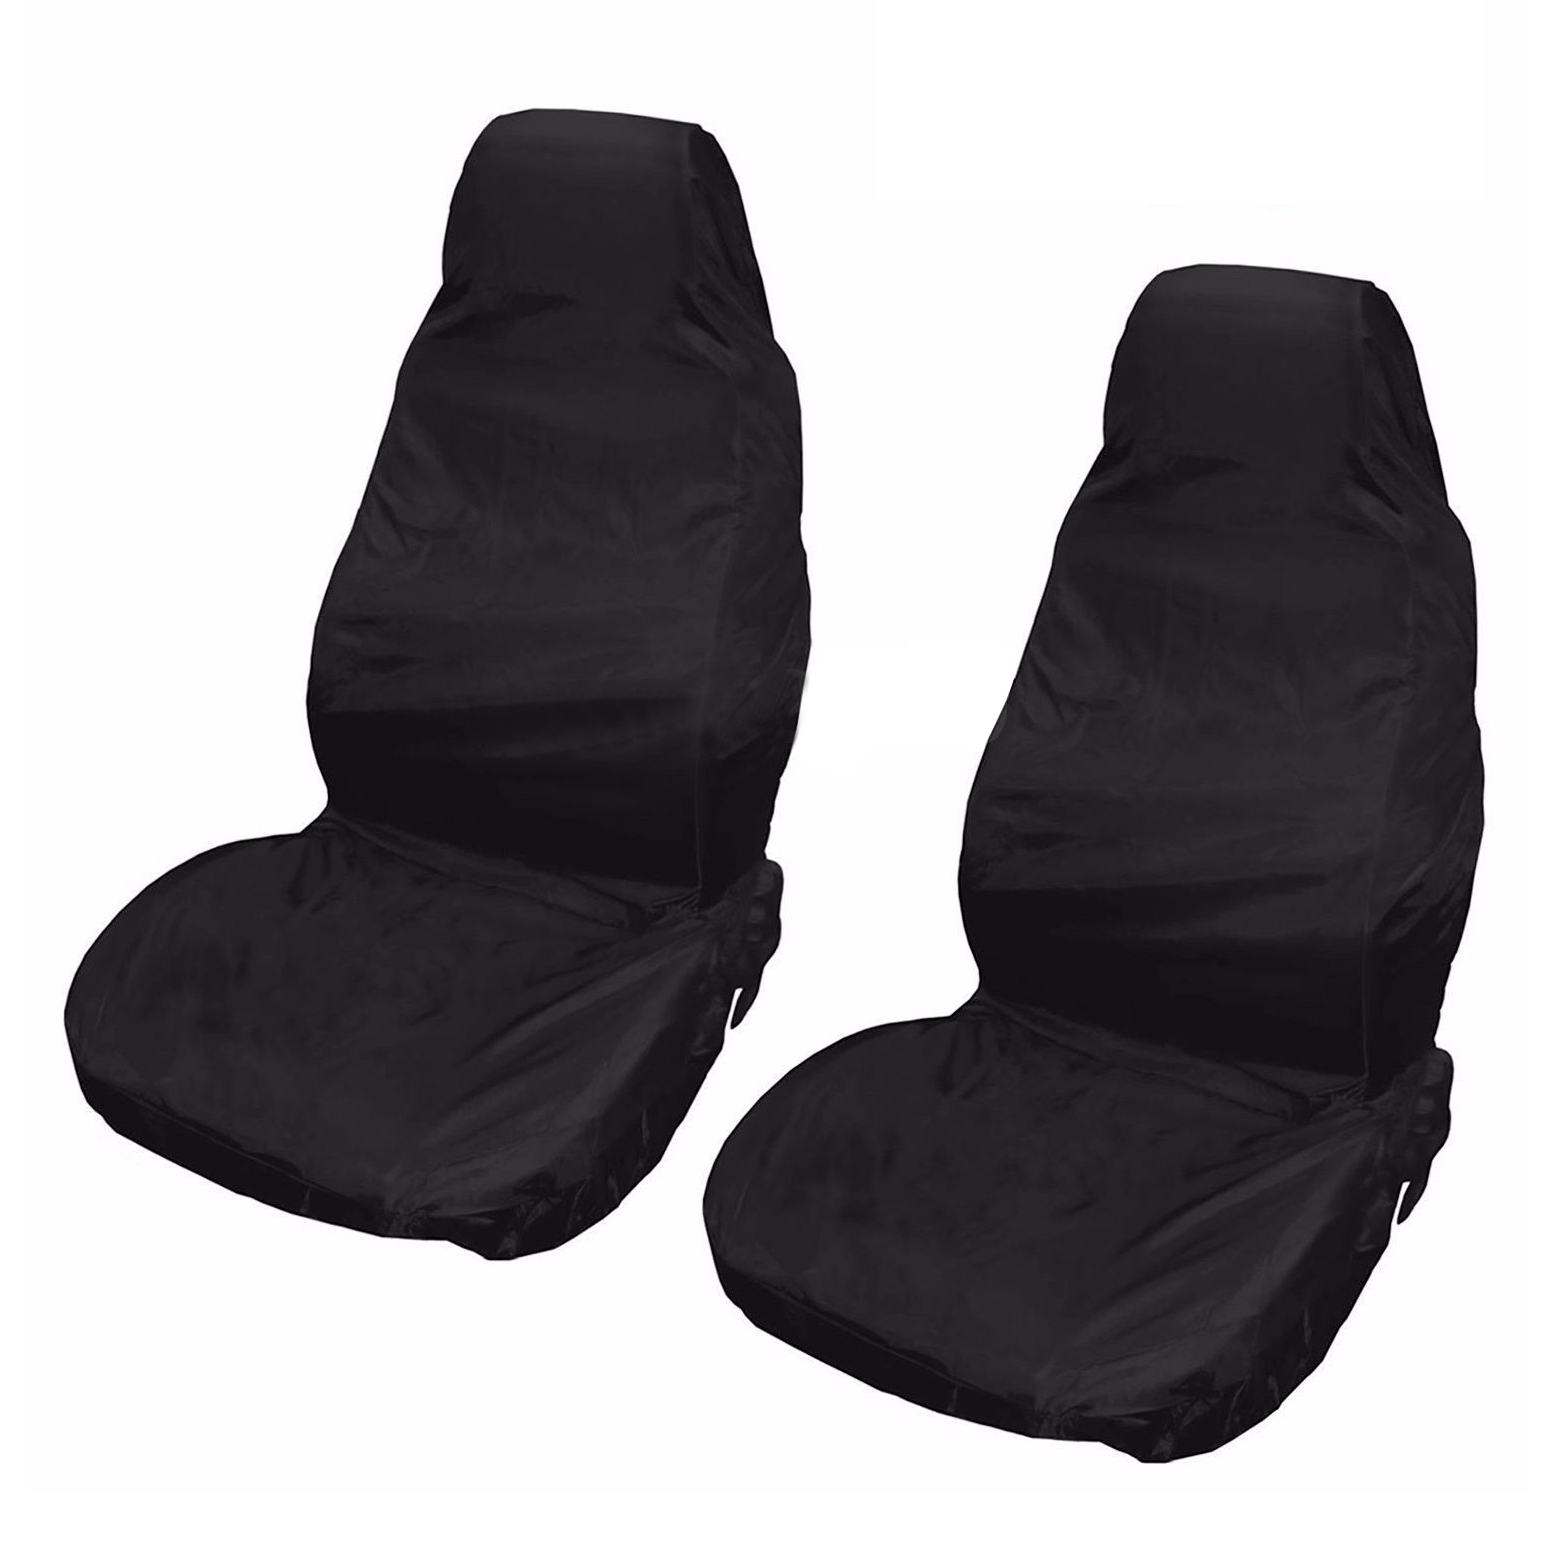 2x universal waterproof nylon front car van seat covers protectors black t2s6 ebay. Black Bedroom Furniture Sets. Home Design Ideas